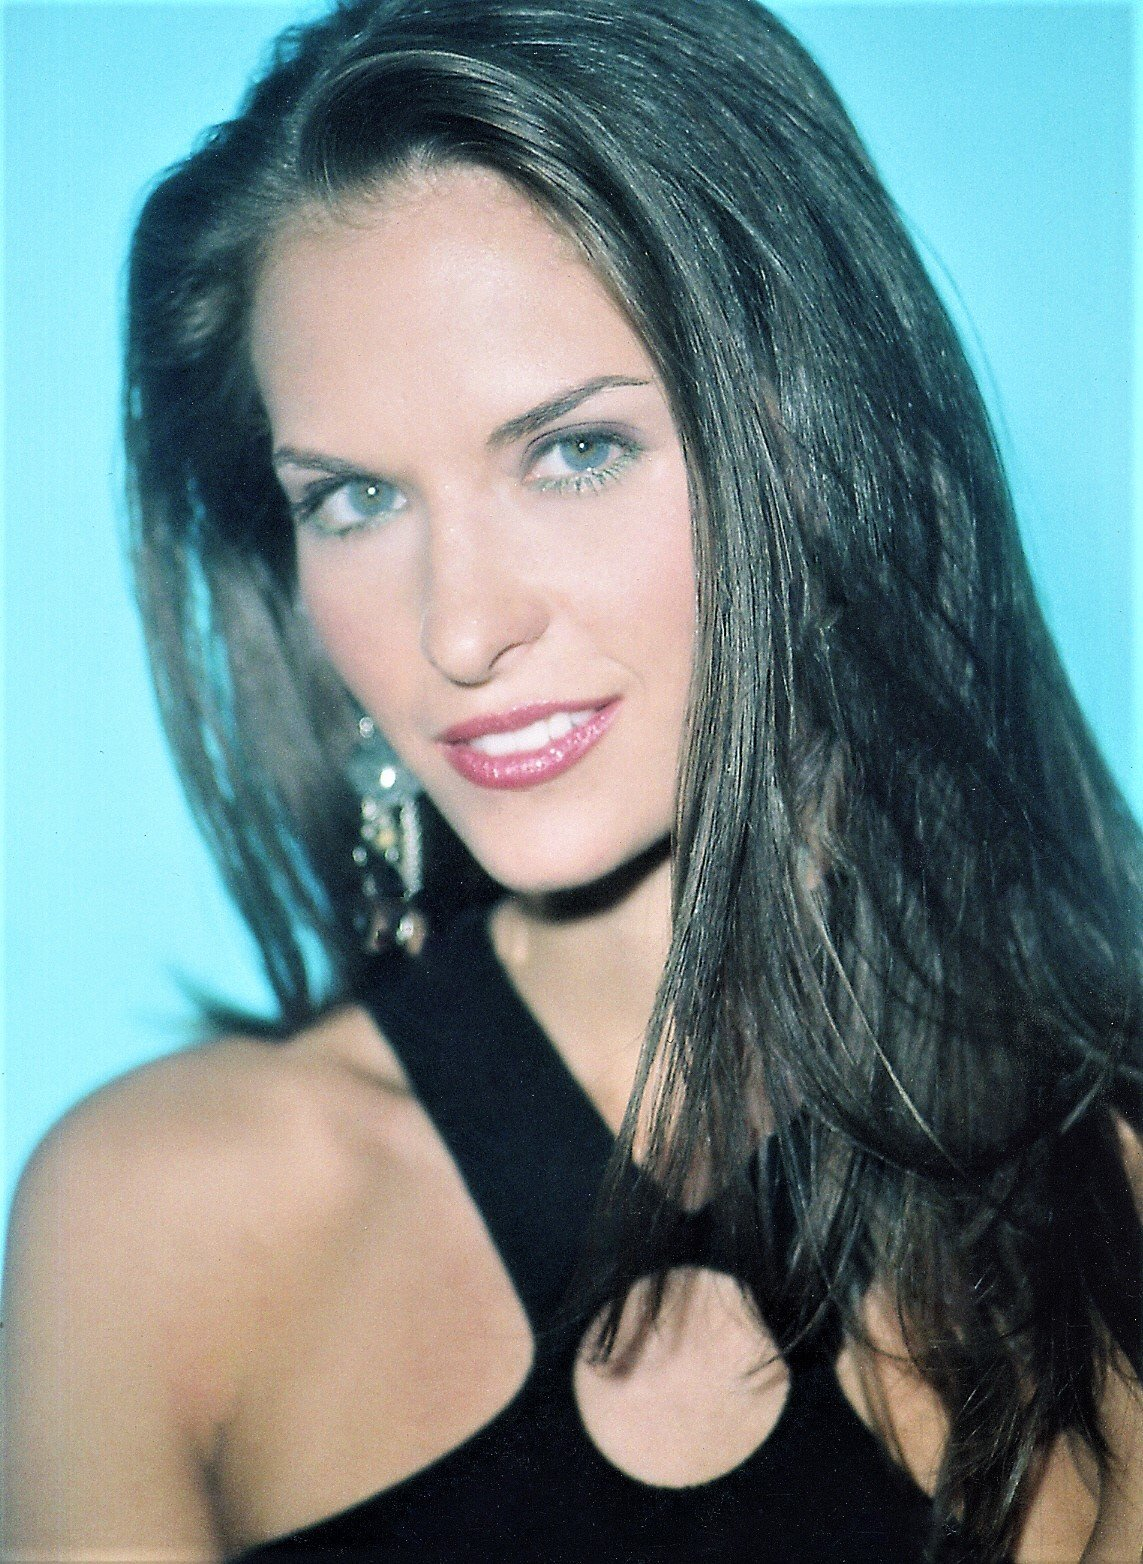 MISS SC-USA  --   JAMIE HILL  She was TOP 15 finalist at MISS USA.